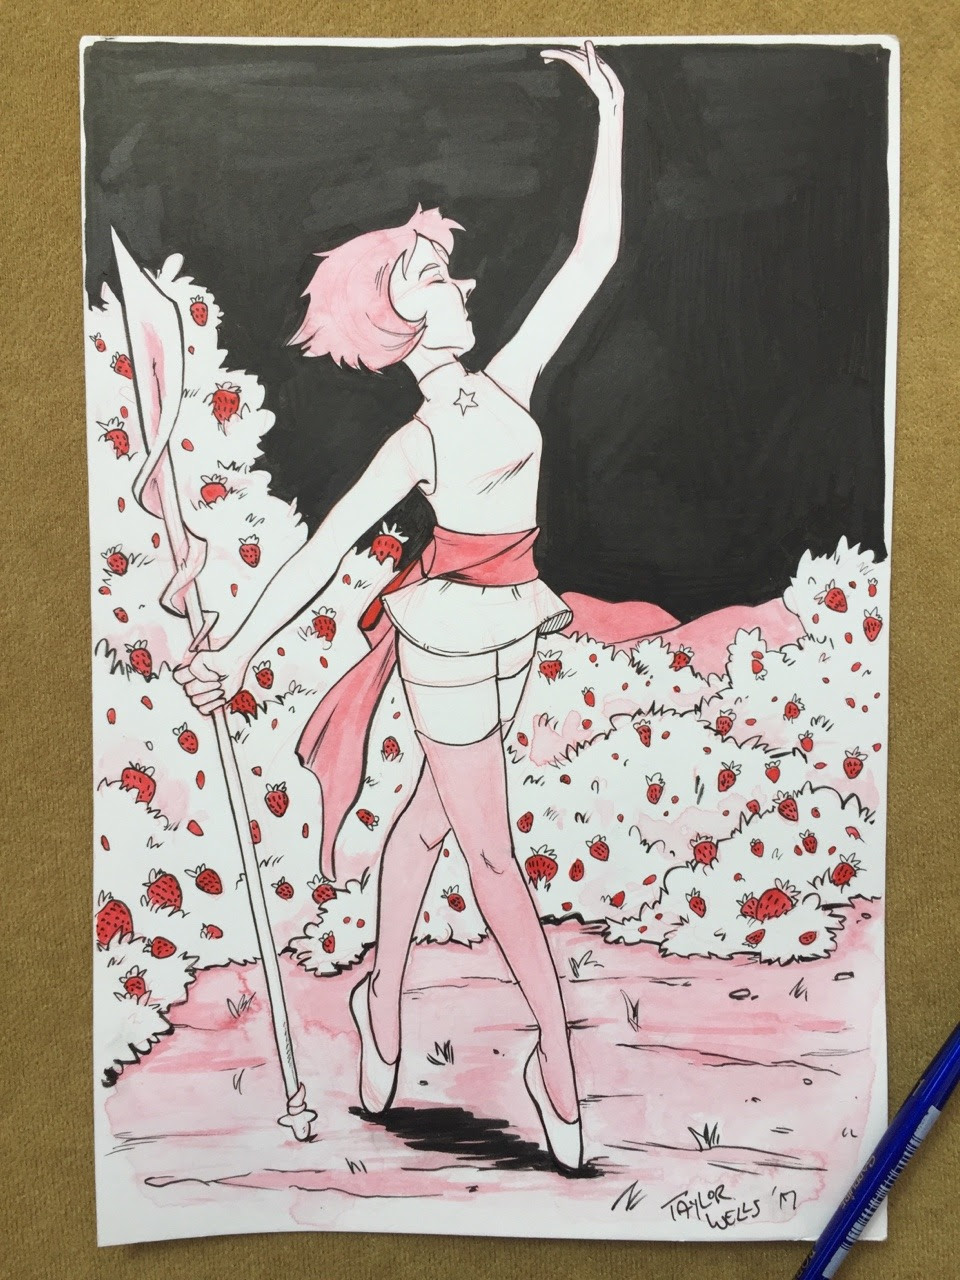 Inktober Day 11 - Pearl from Steven Universe I had to put Inktober on hold for a few days, but I'm back at it! I'm actually tabling at Fifo Con in Baton Rouge this weekend, so come check me out!